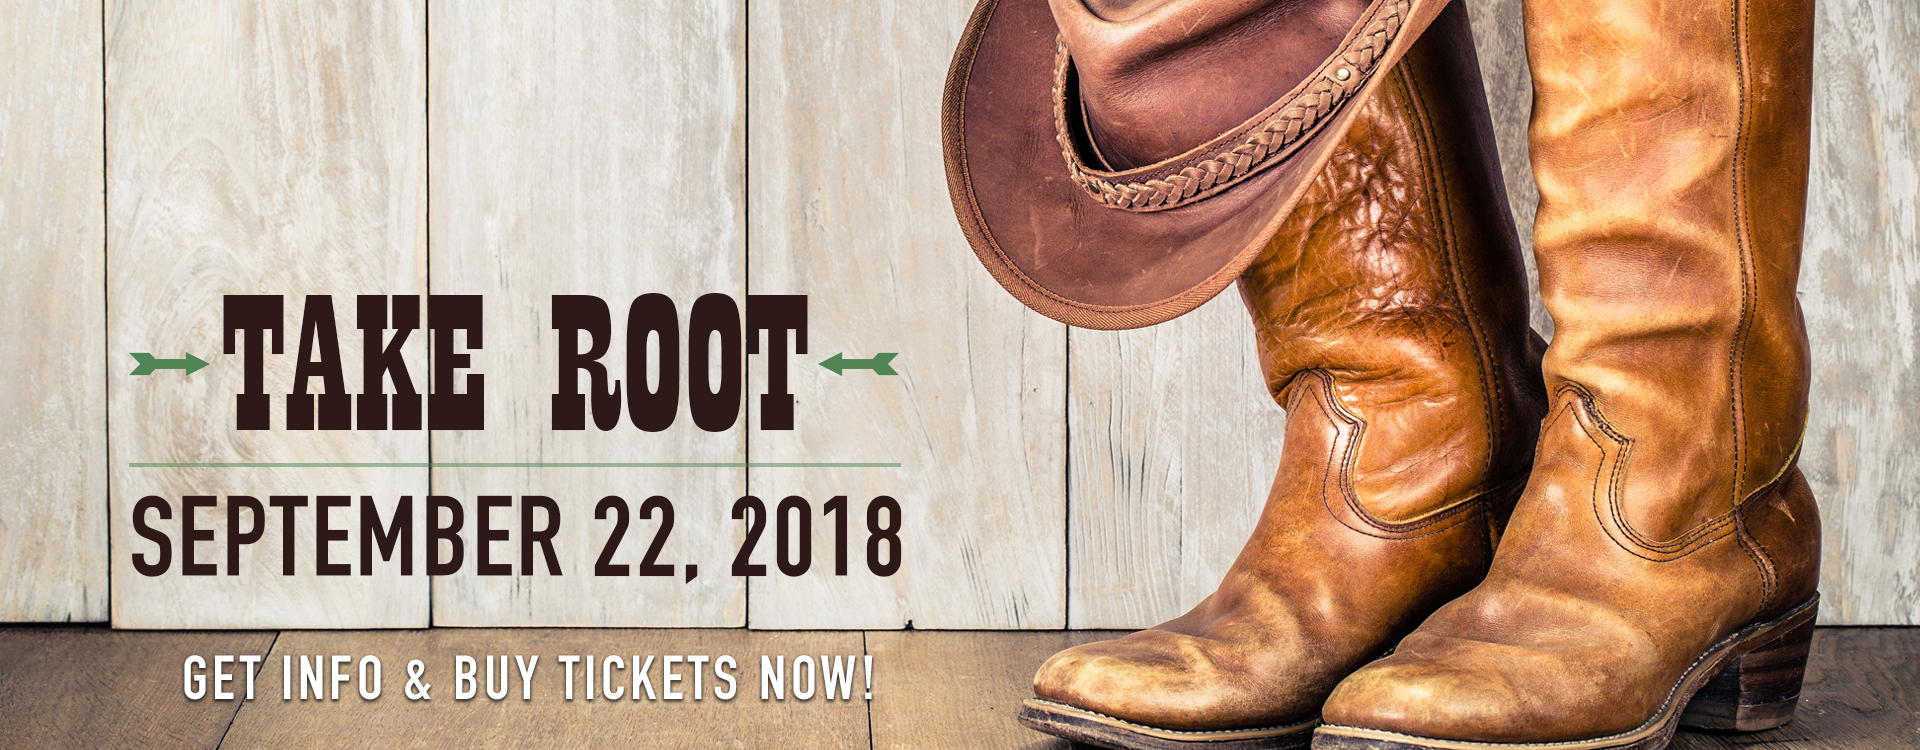 Take Root 2018 - Buy Tickets Now!